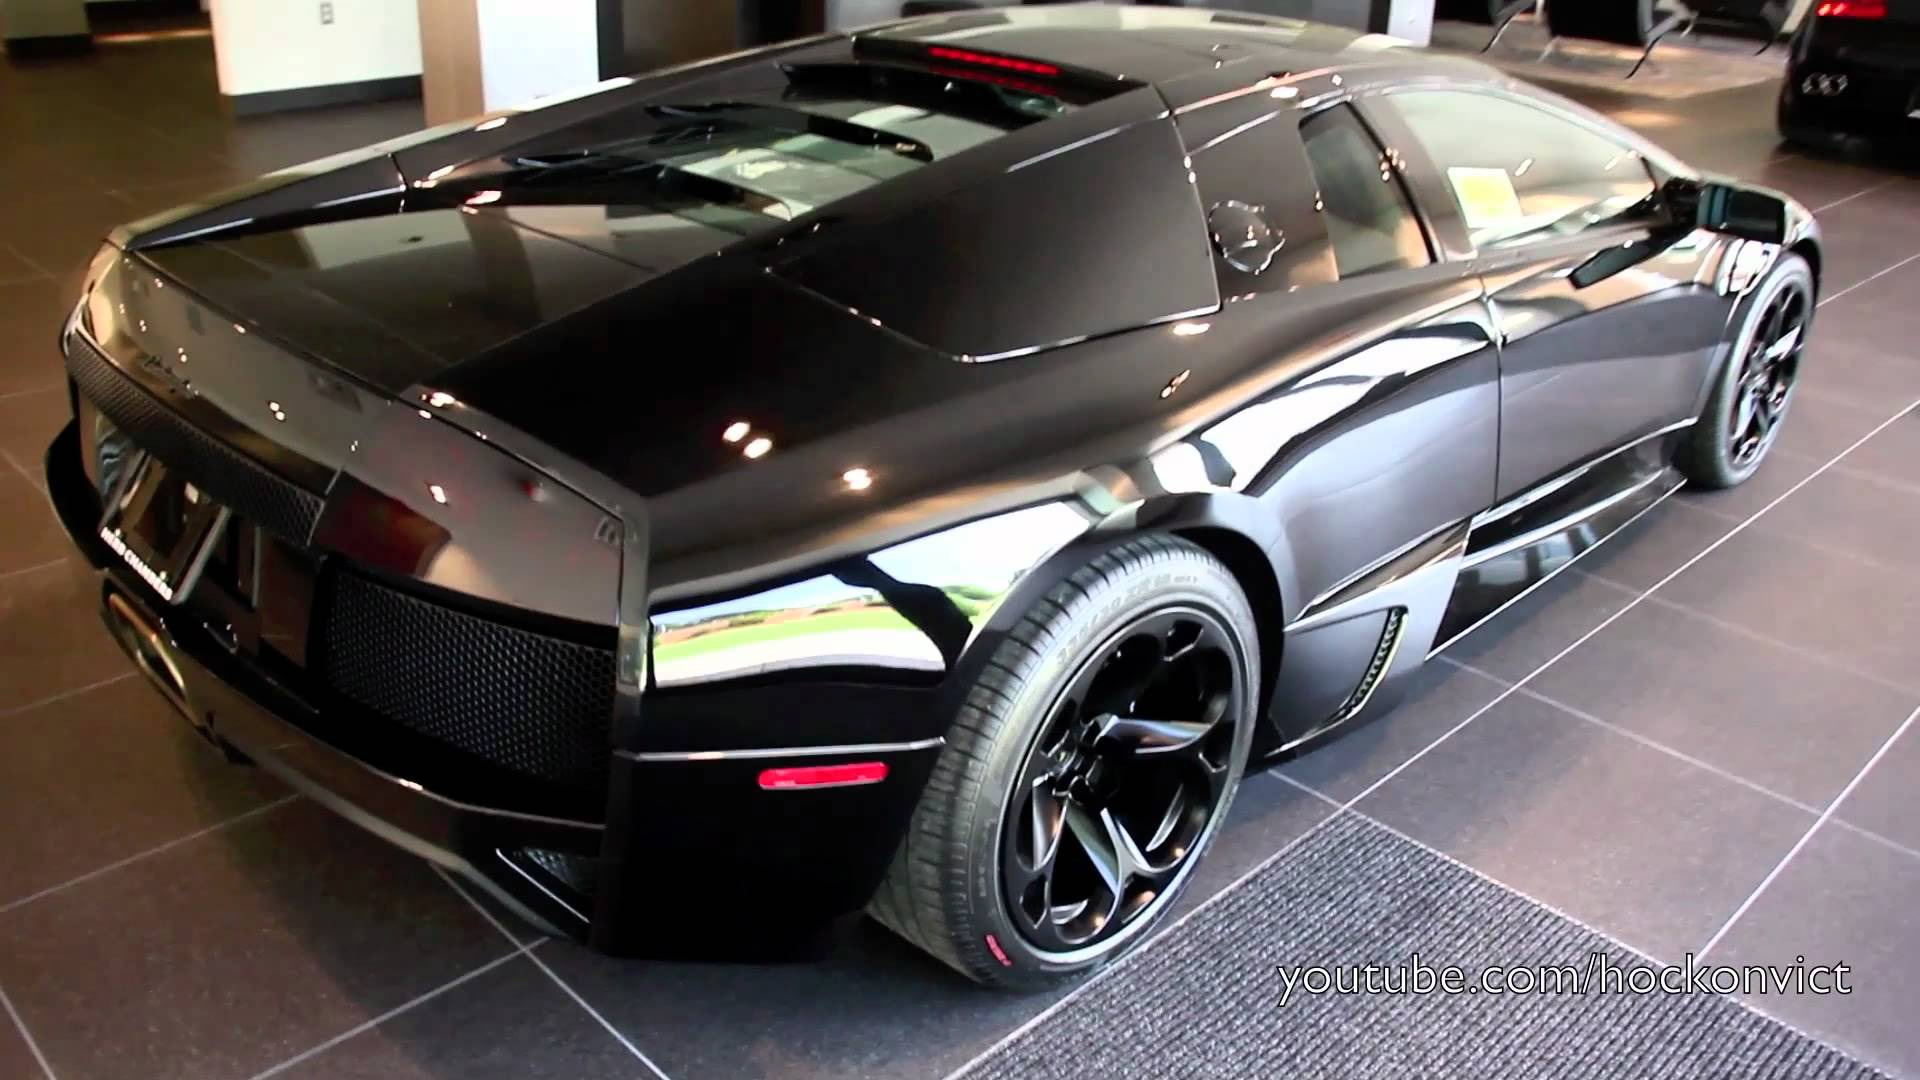 All-Black Lamborghini Murcielago LP640 - YouTube